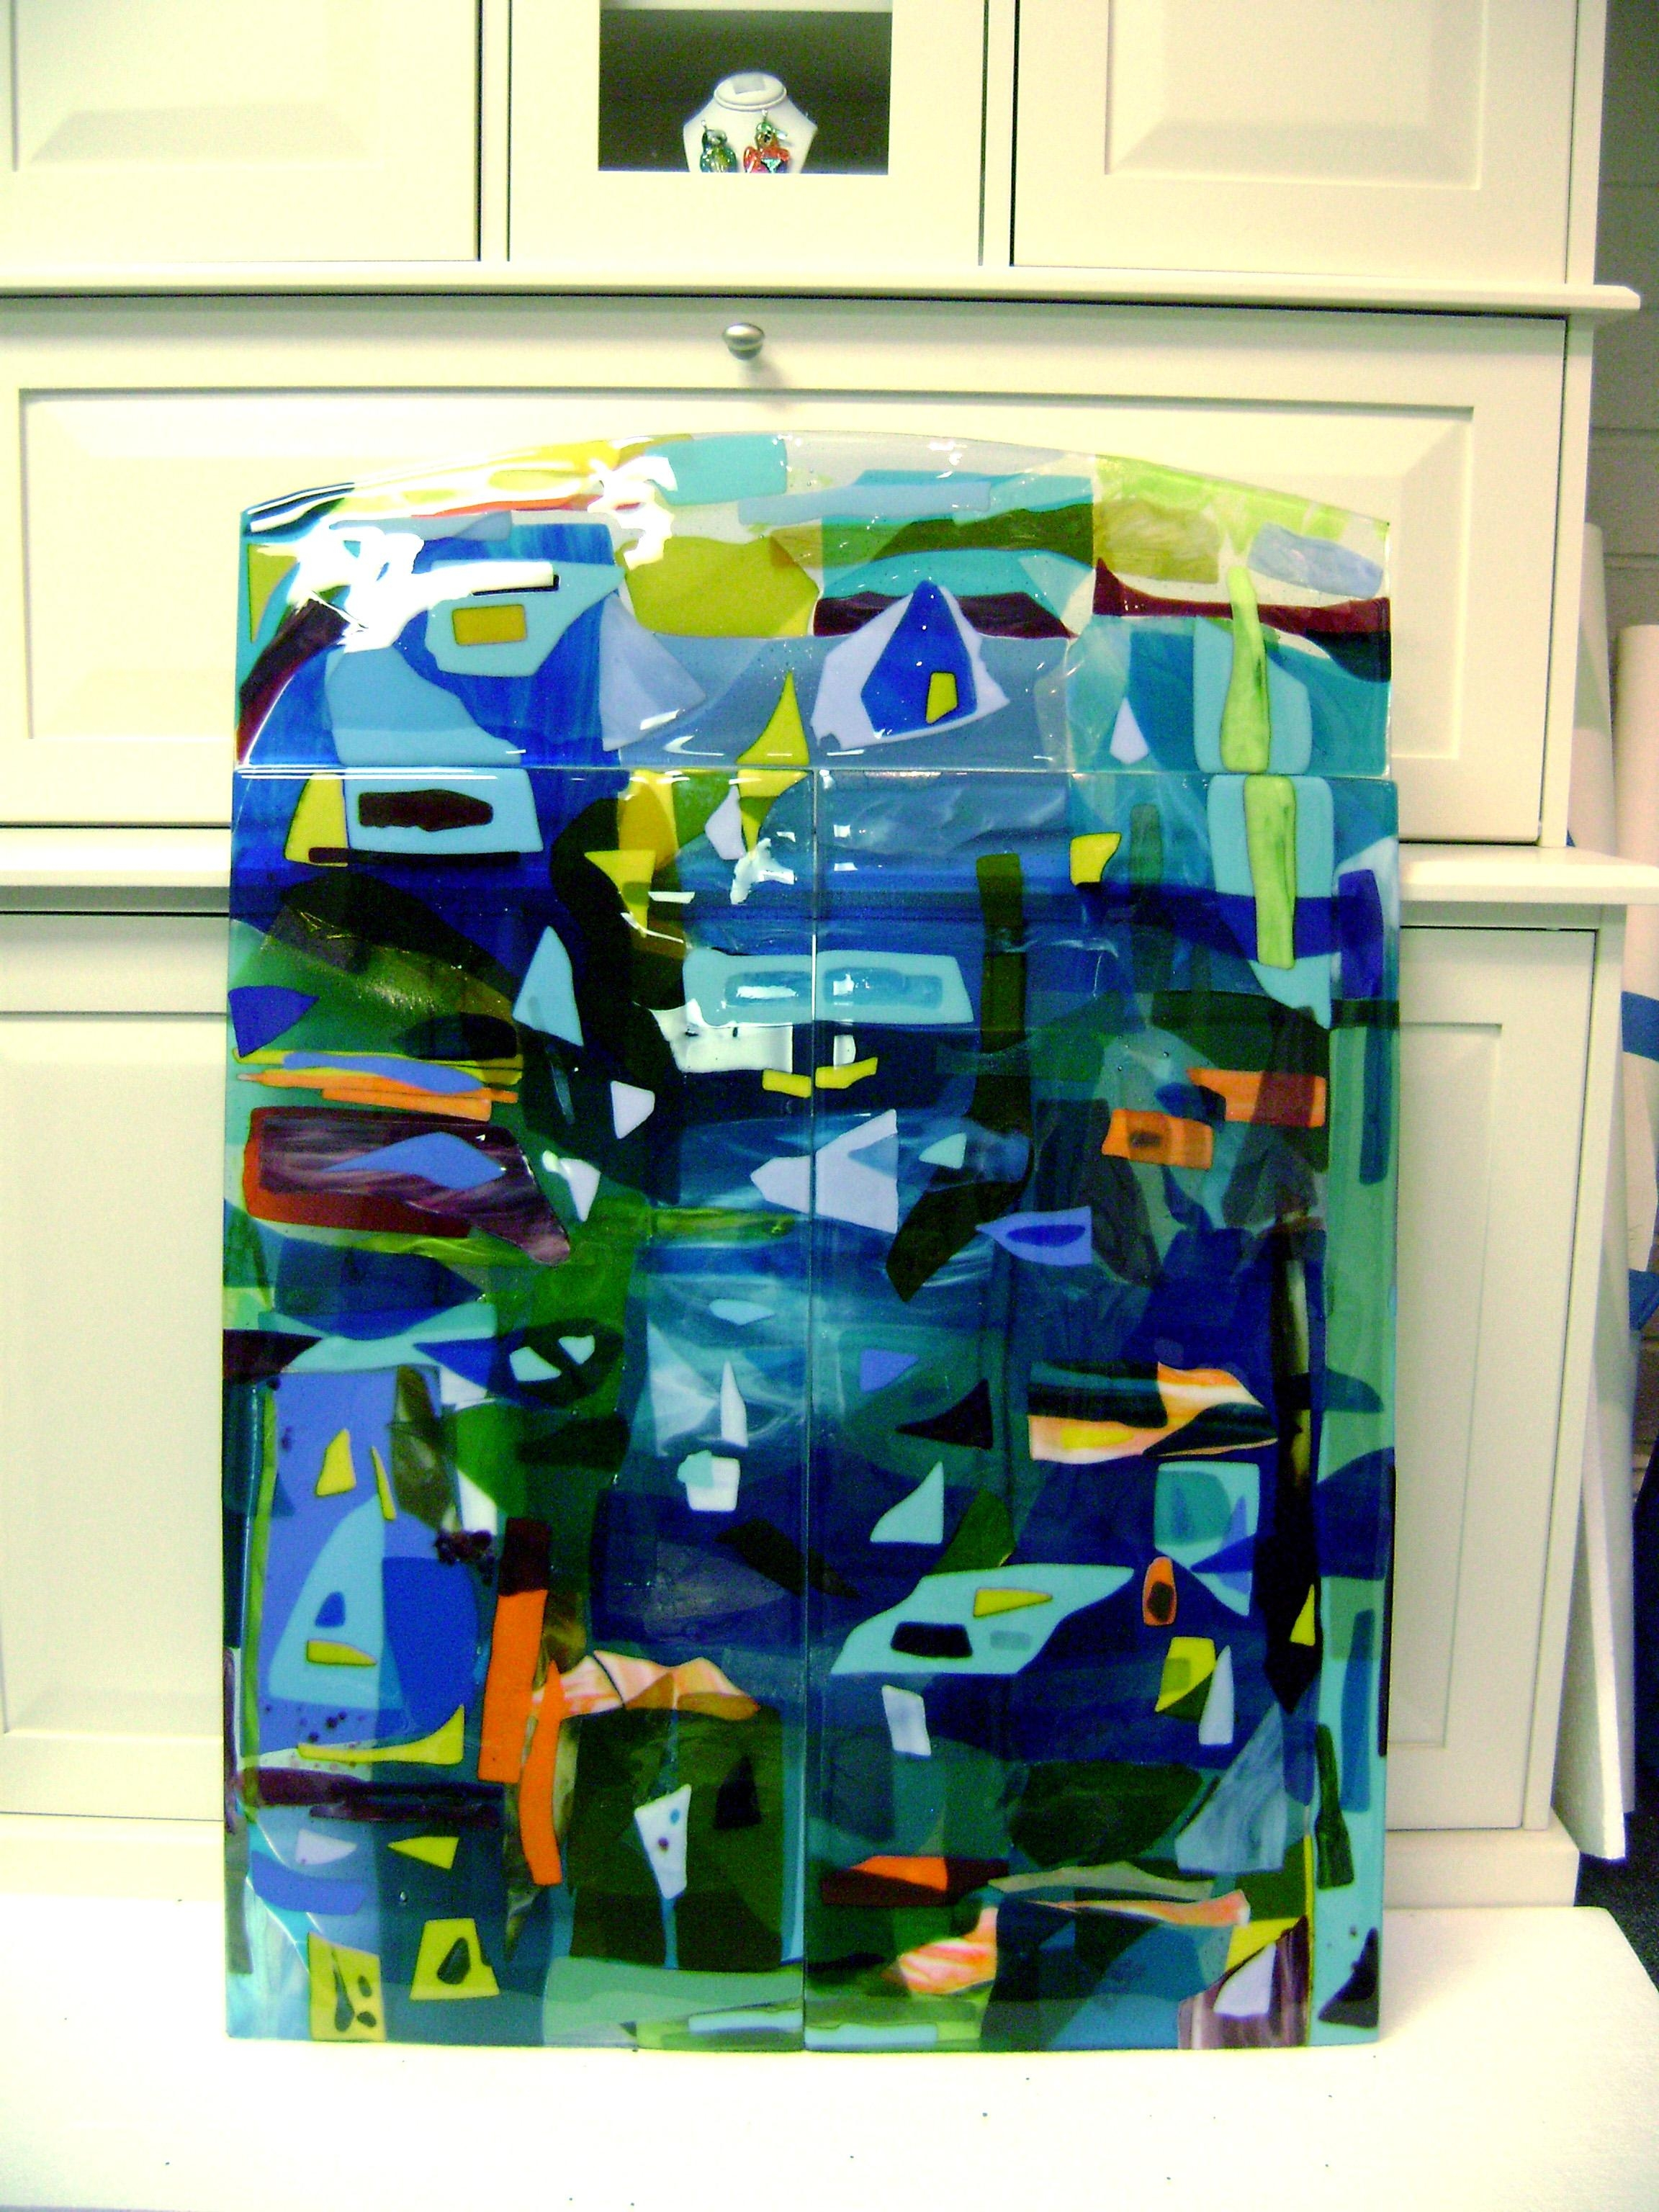 Colorful Fused Glass Wall Art Panel | Designer Glass Mosaics Regarding Glass Wall Art Panels (Image 11 of 20)